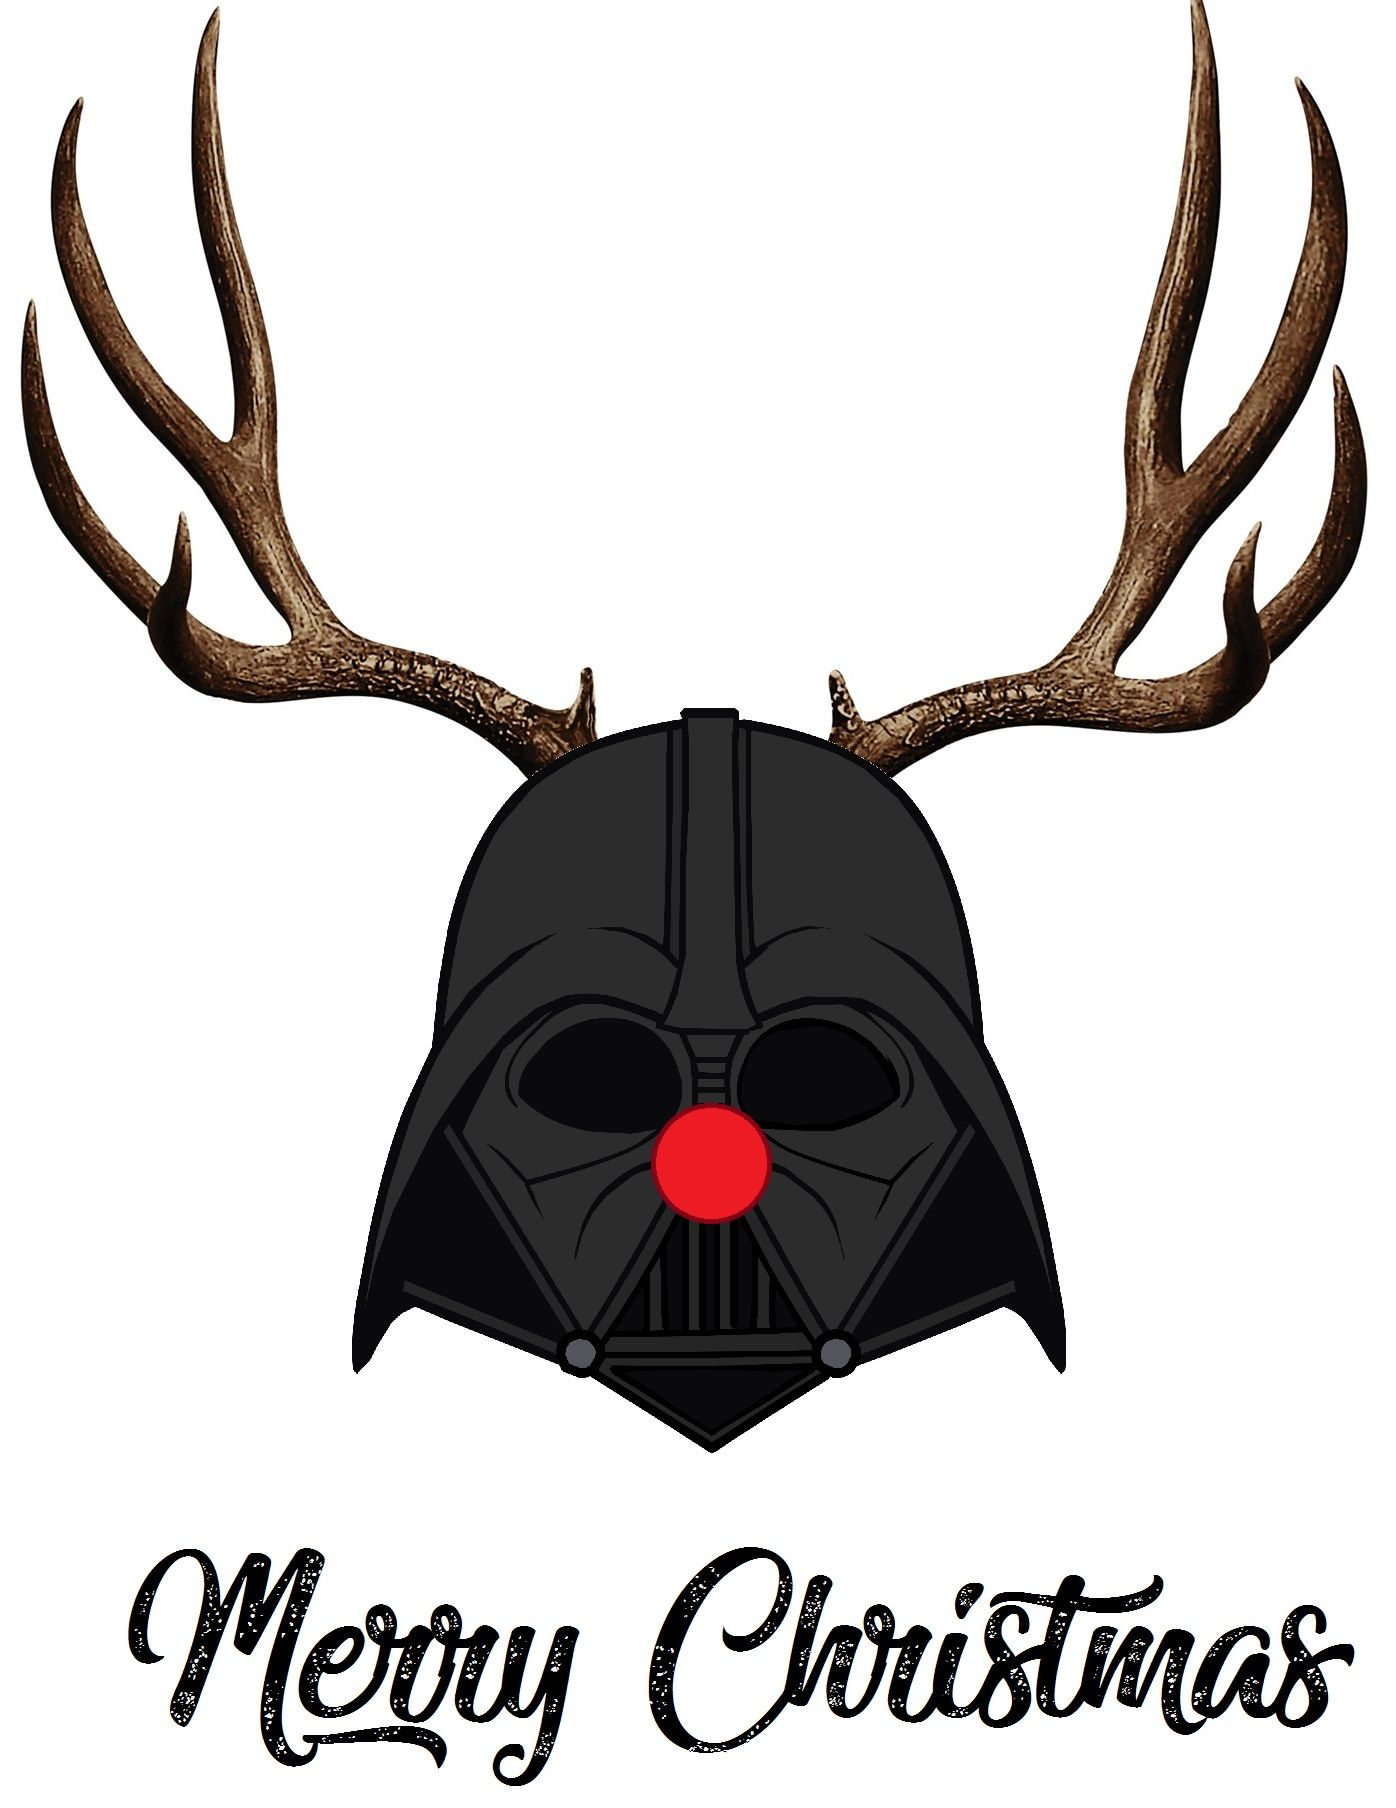 christmas starwars darthvader rudolph raindeer. Black Bedroom Furniture Sets. Home Design Ideas